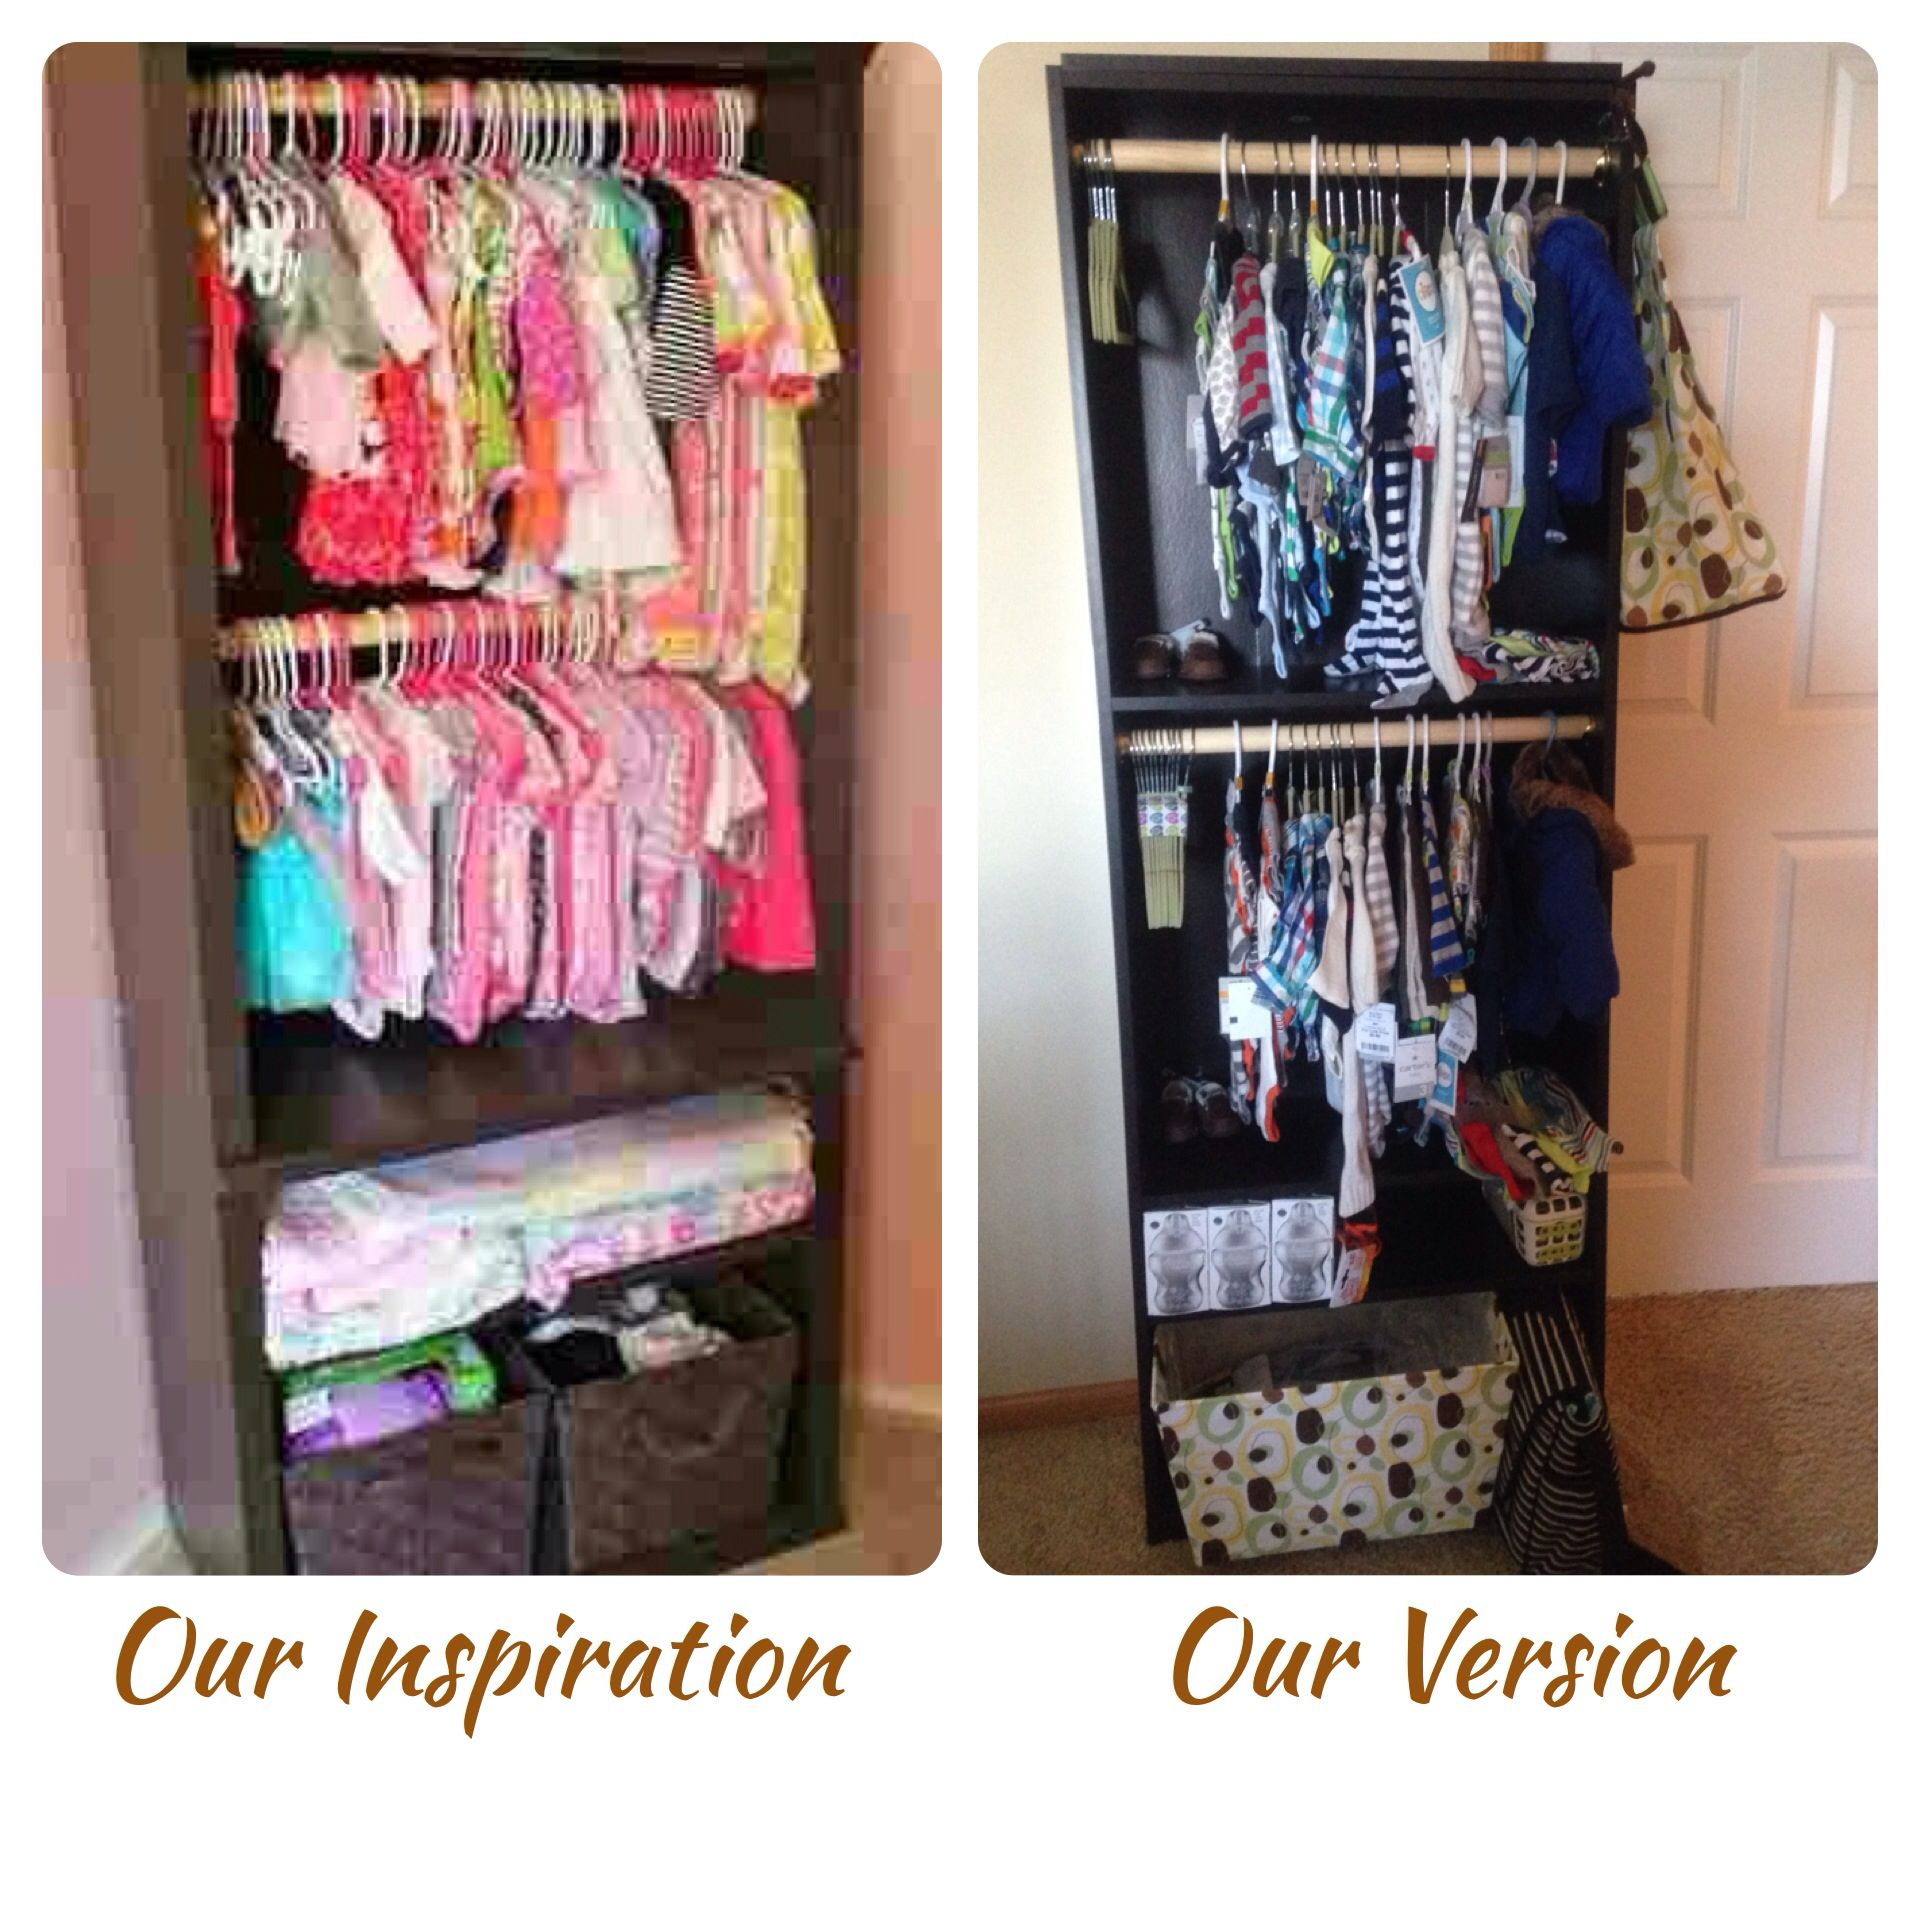 Turn A Bookshelf Into A Mini Closet For The Babyu0027s Room. | Friendsu0027 Web  Pages | Pinterest | Minis, Room And Babies